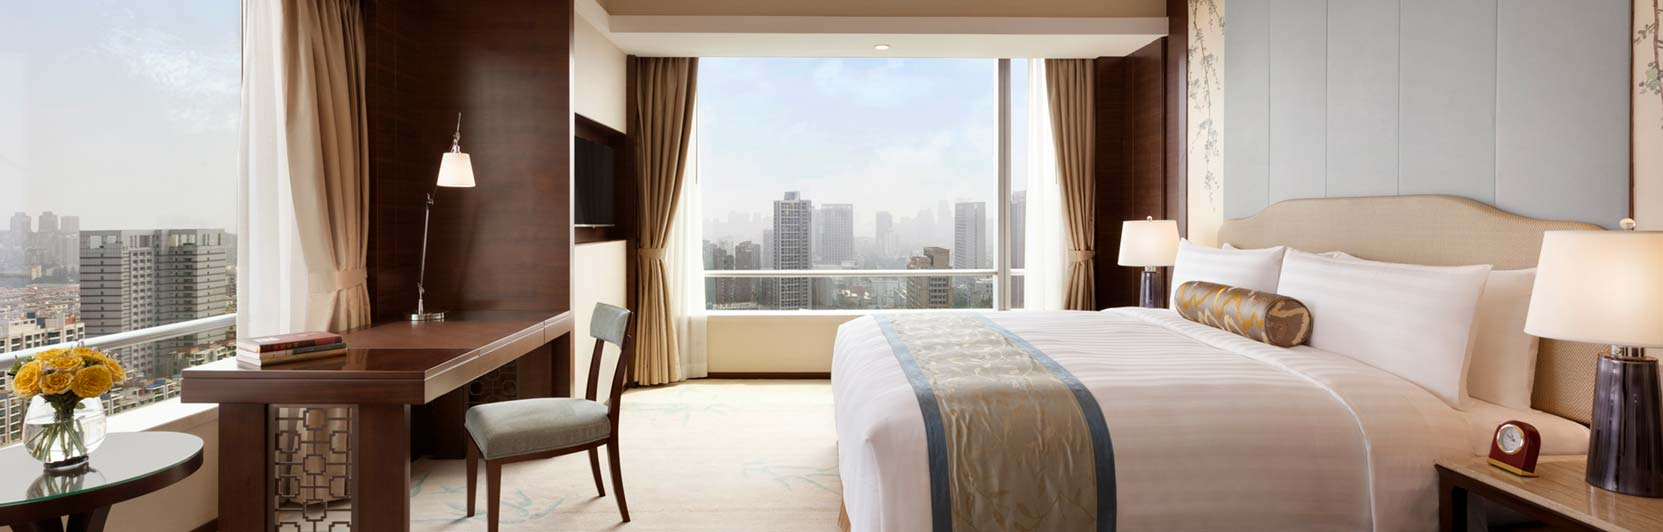 Hotel photography of the executive king suite at Shangri-La Hotel Hefei in China